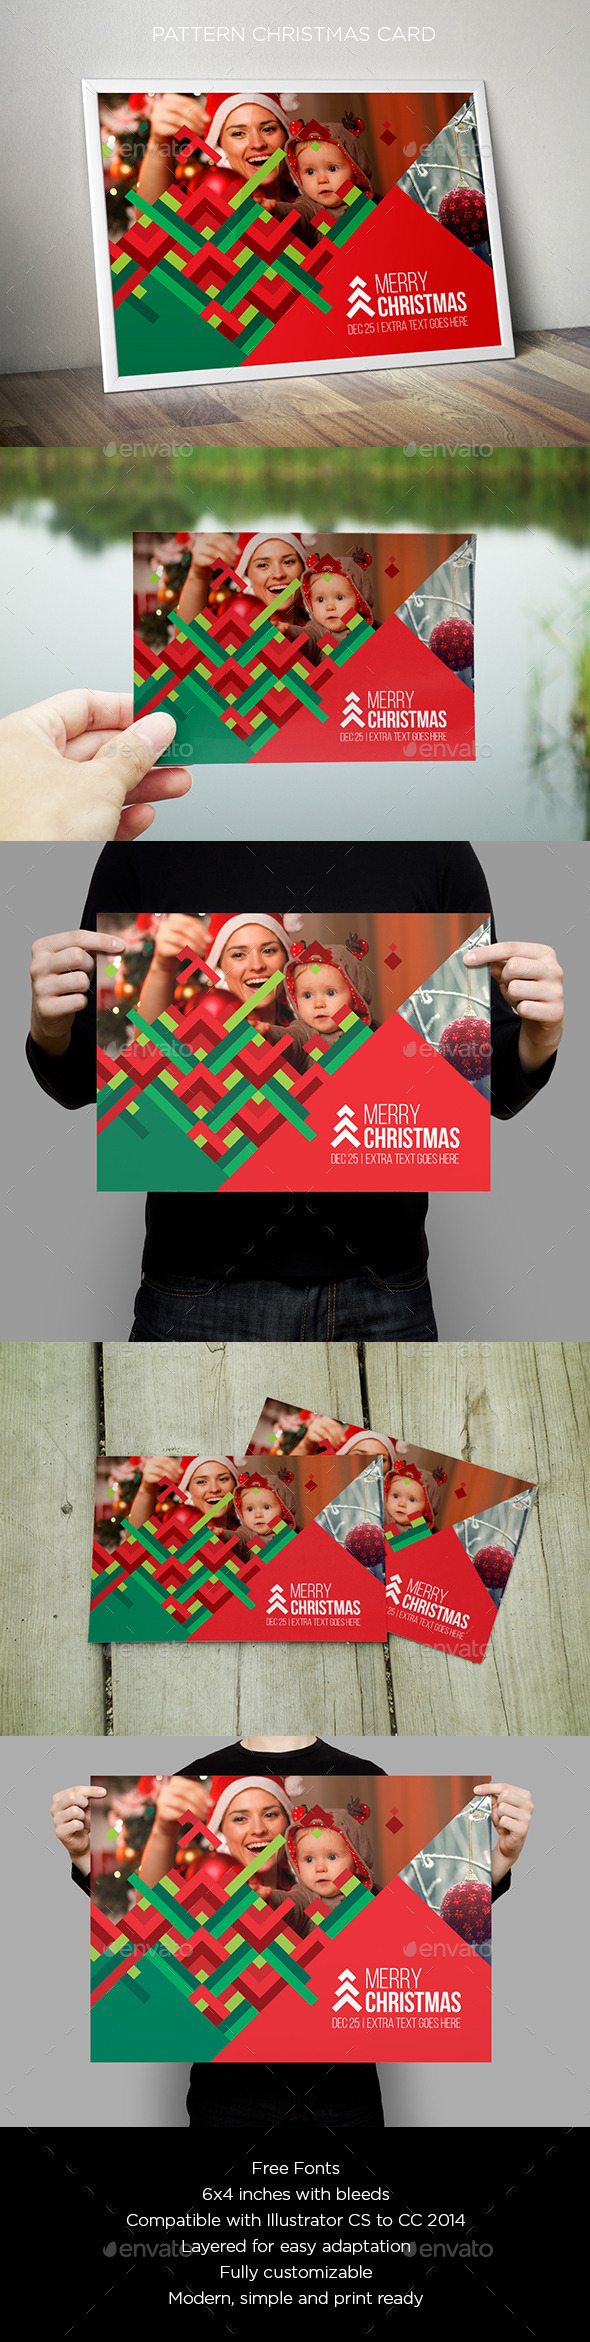 GraphicRiver Pattern Christmas Card 9658603